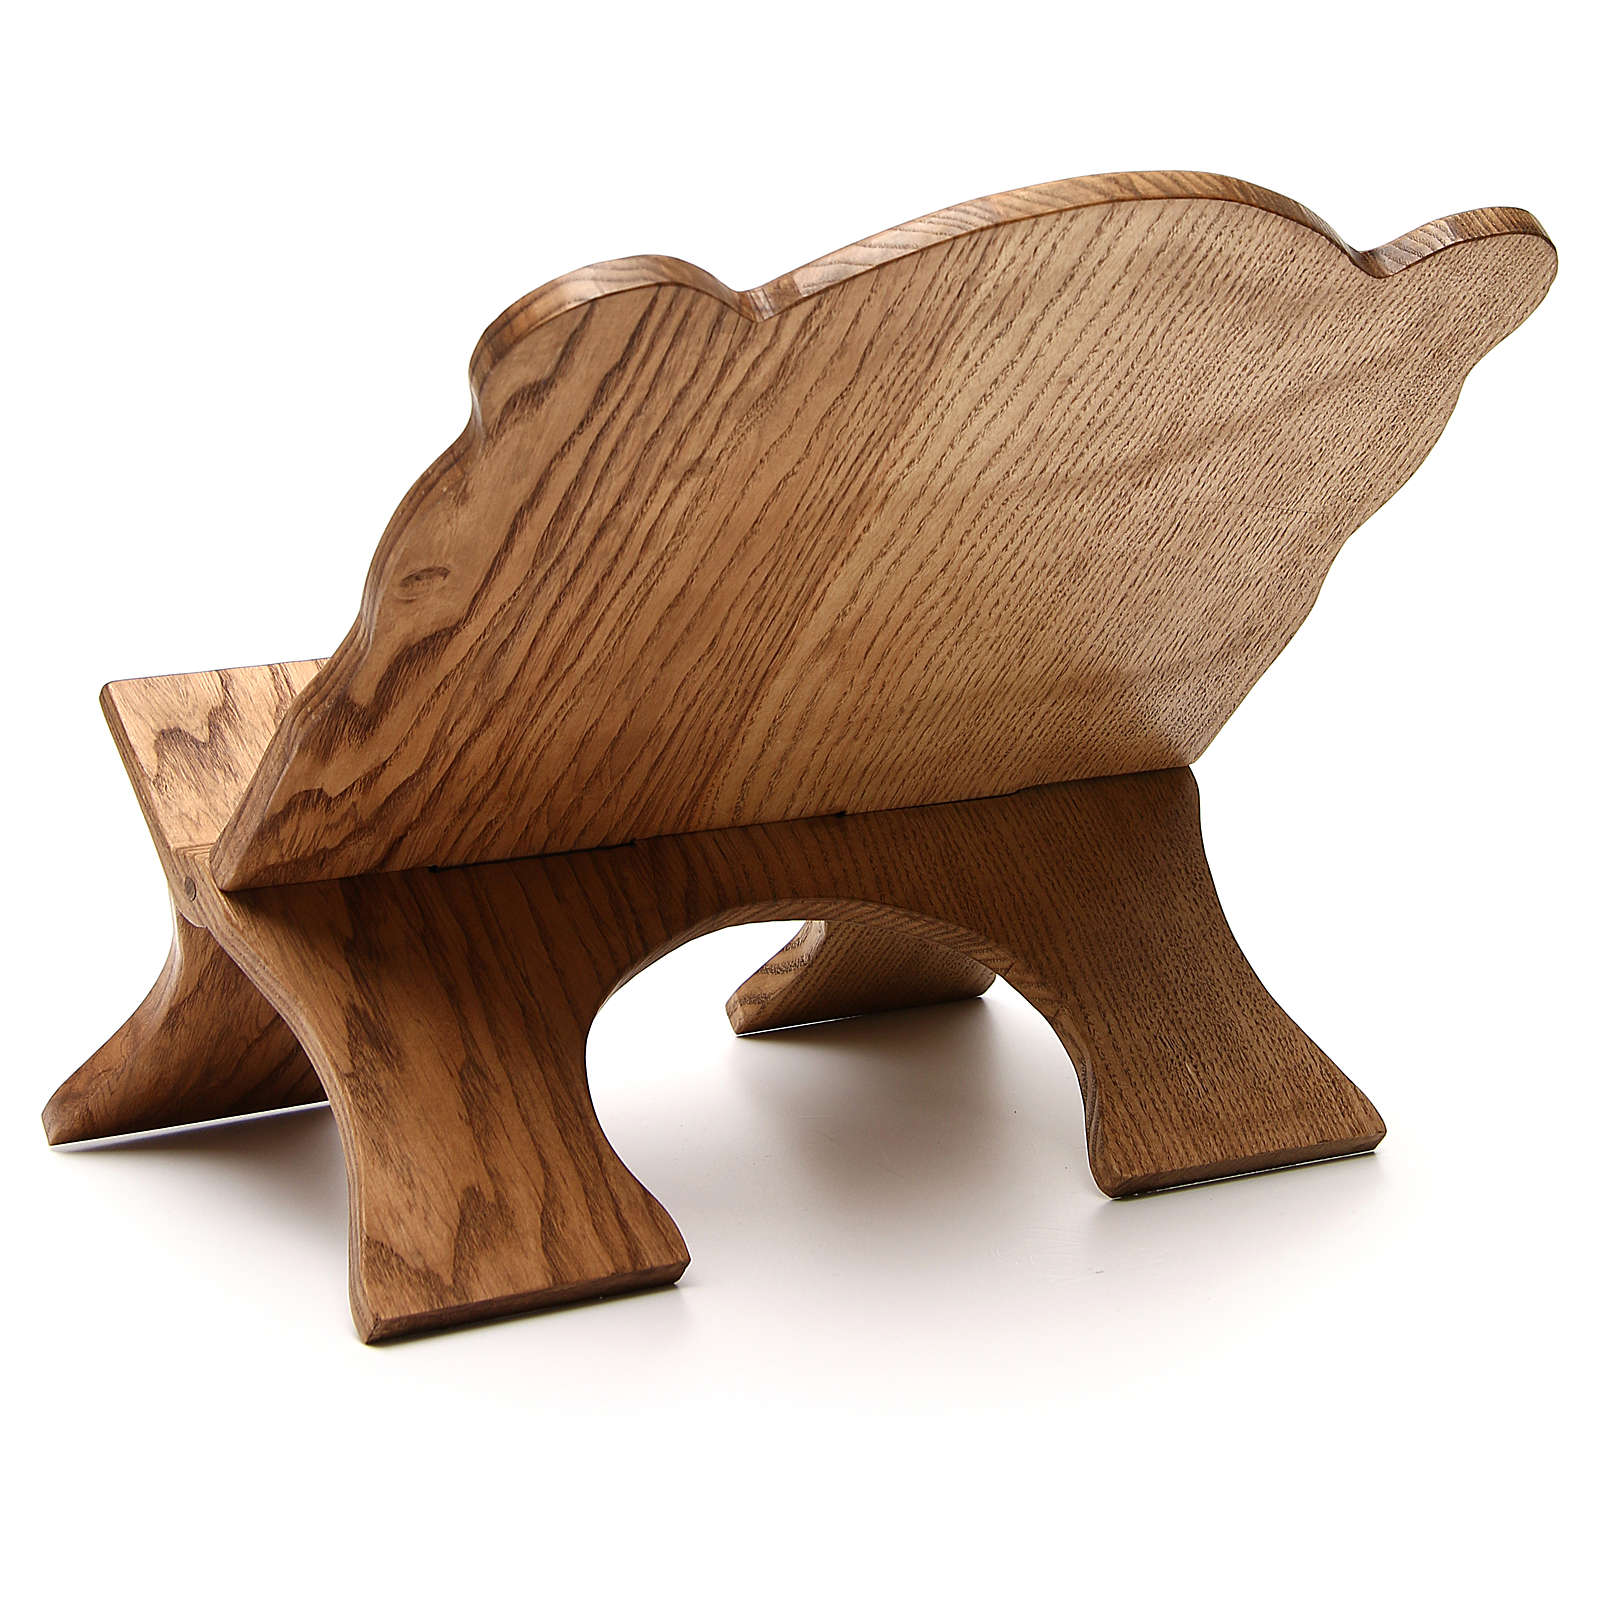 Book stand in white ash wood, simple model, hand carved by the Bethlehem monks 4